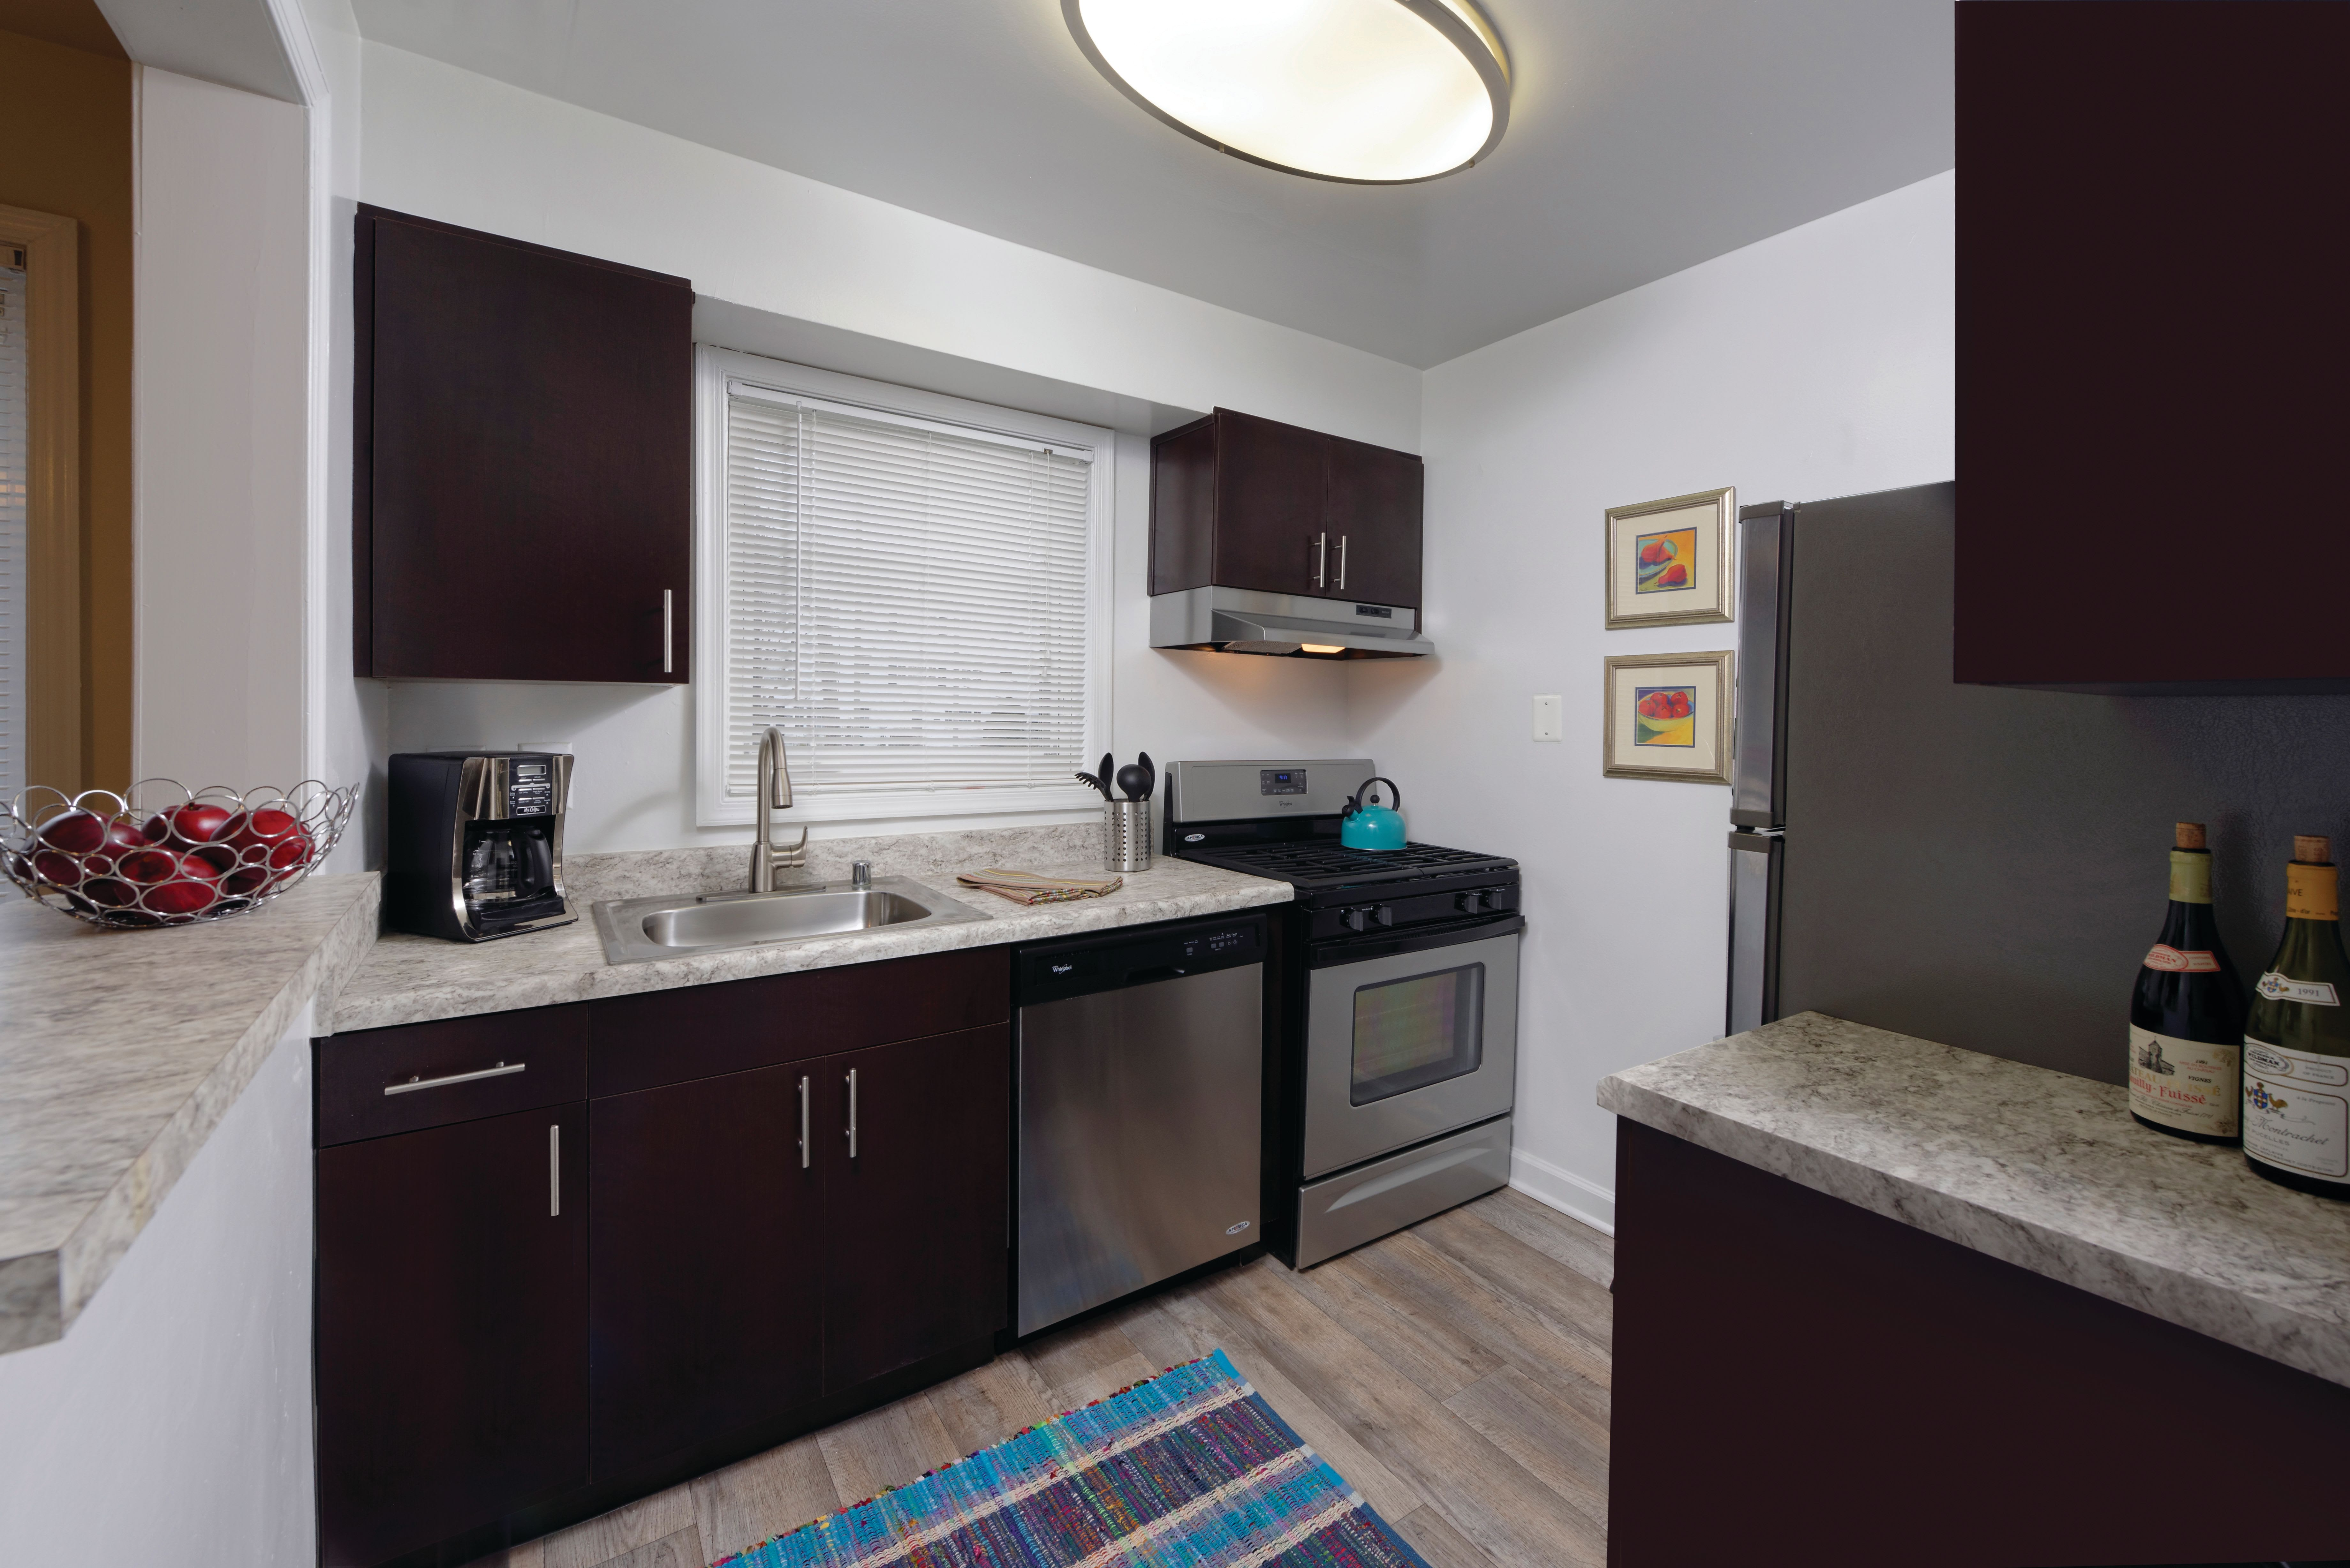 Black appliances in an apartment kitchen at Braddock Lee Apartments in Alexandria, Virginia